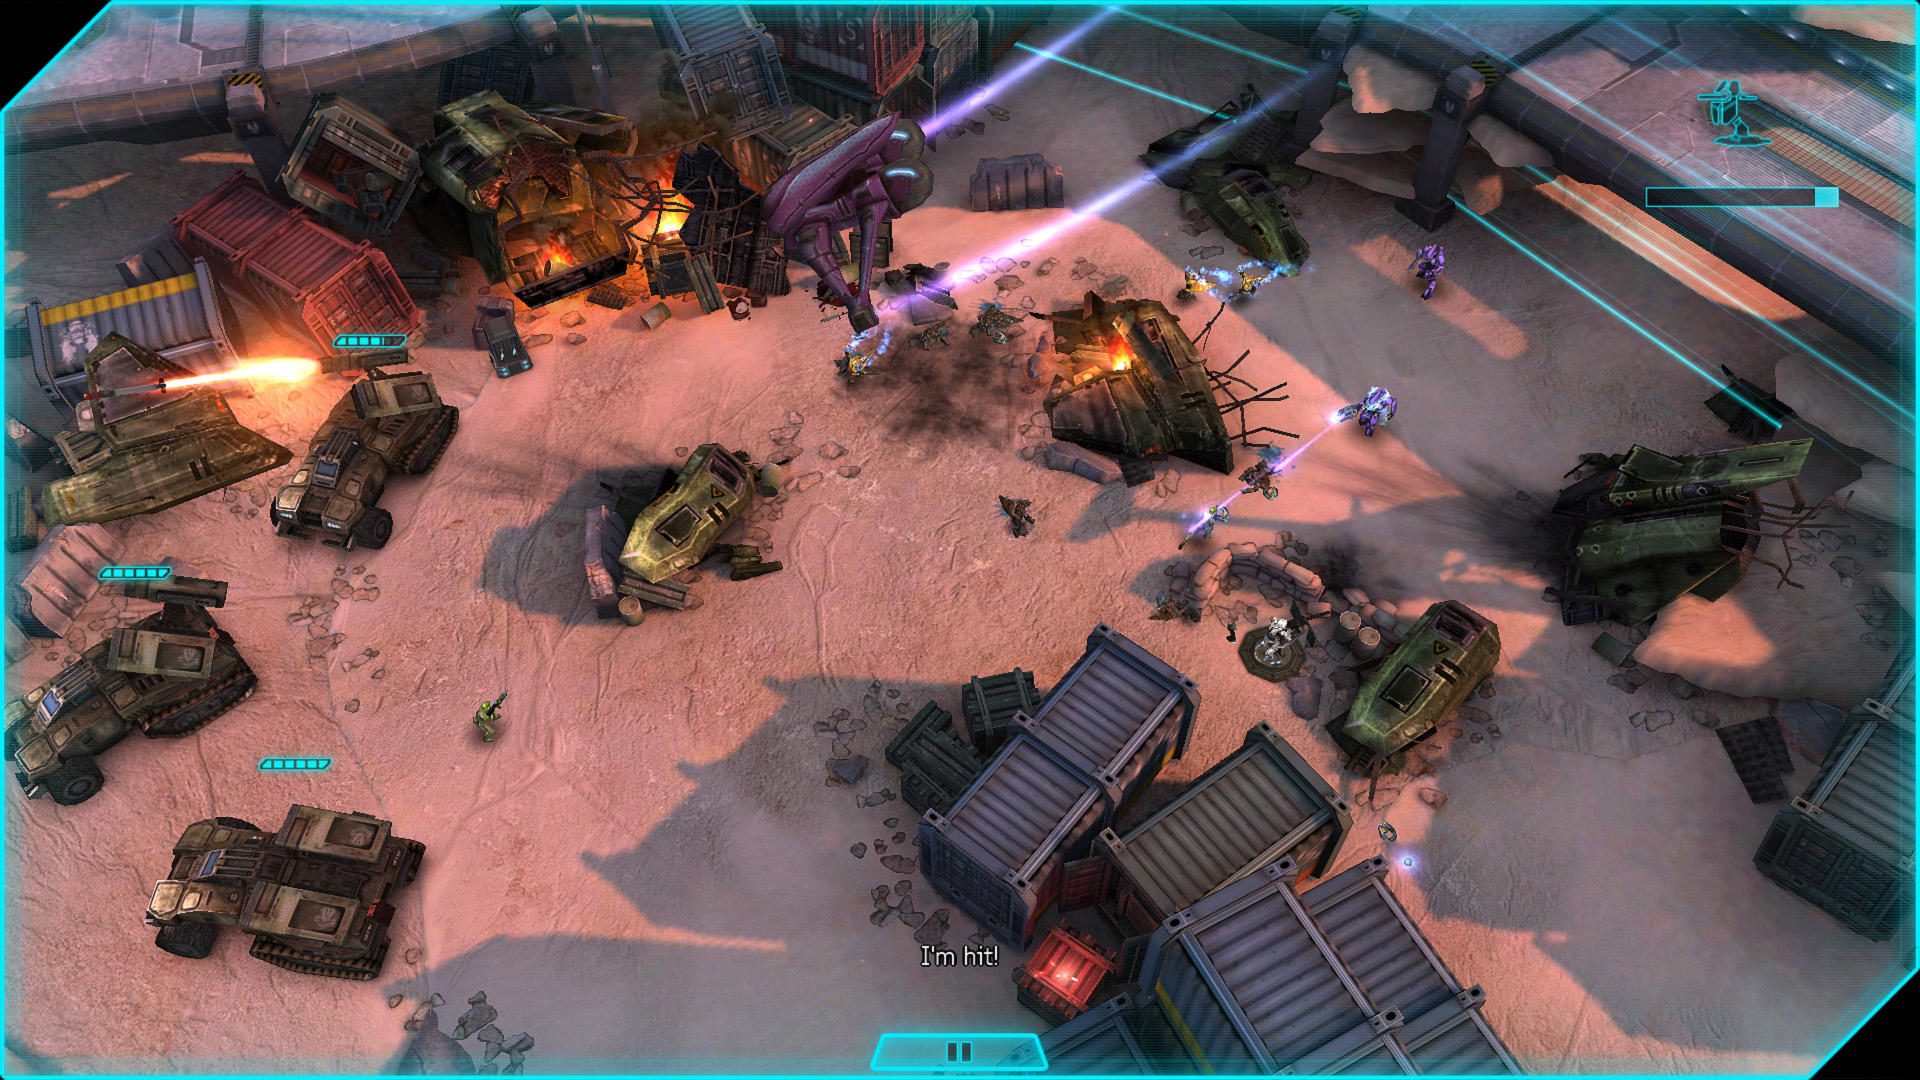 Halo Spartan Assault Screenshot - Banshee Strike.jpg